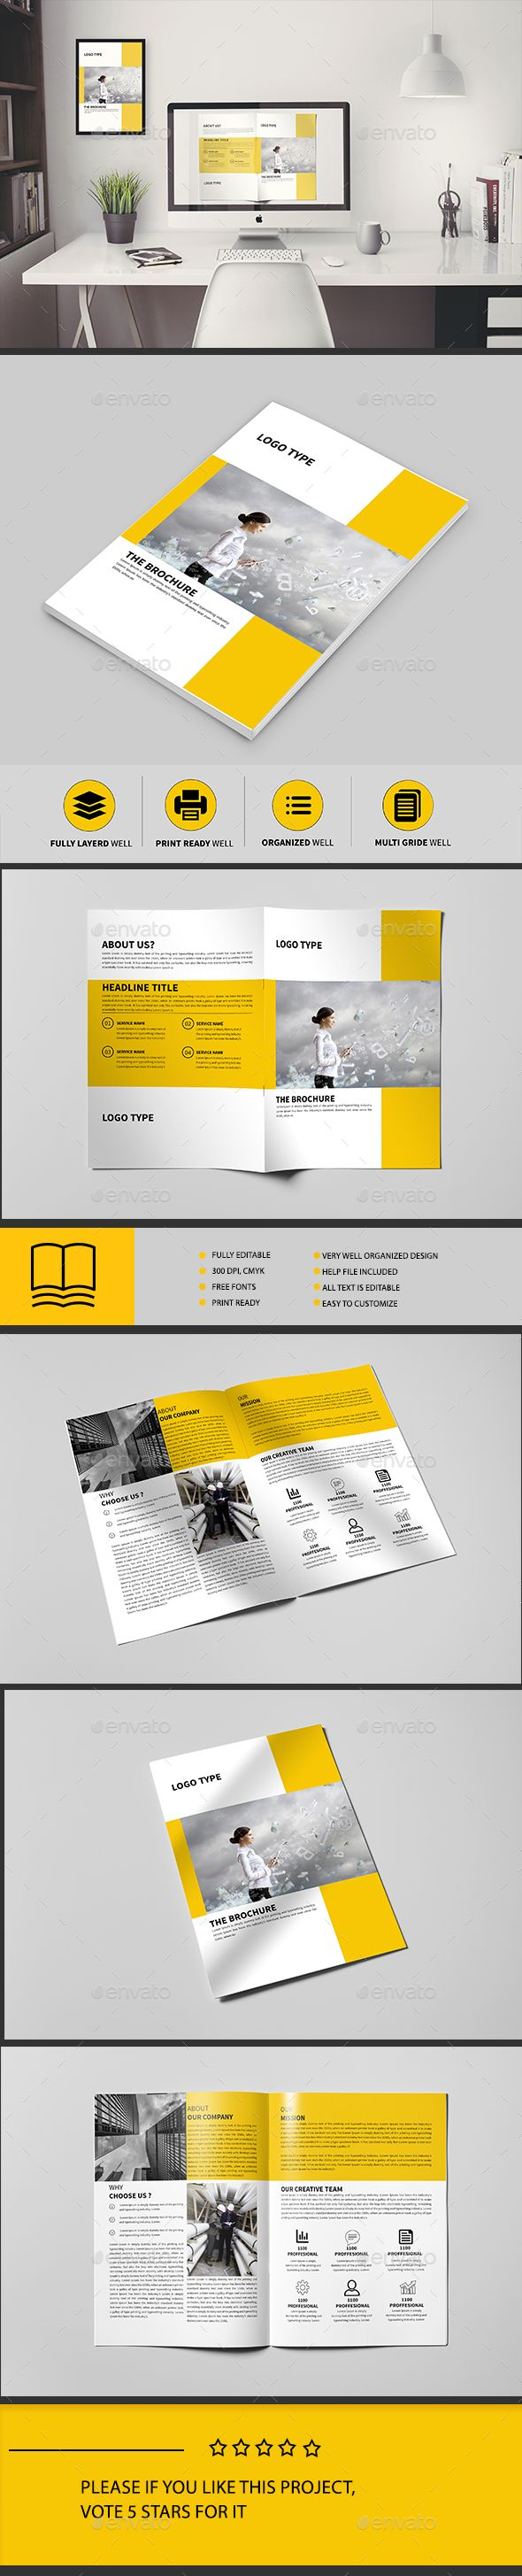 Corporate Bi-Fold Brochure Template 	InDesign INDD. Download here: https://graphicriver.net/item/corporate-bifold-brochure-04/17547863?ref=ksioks